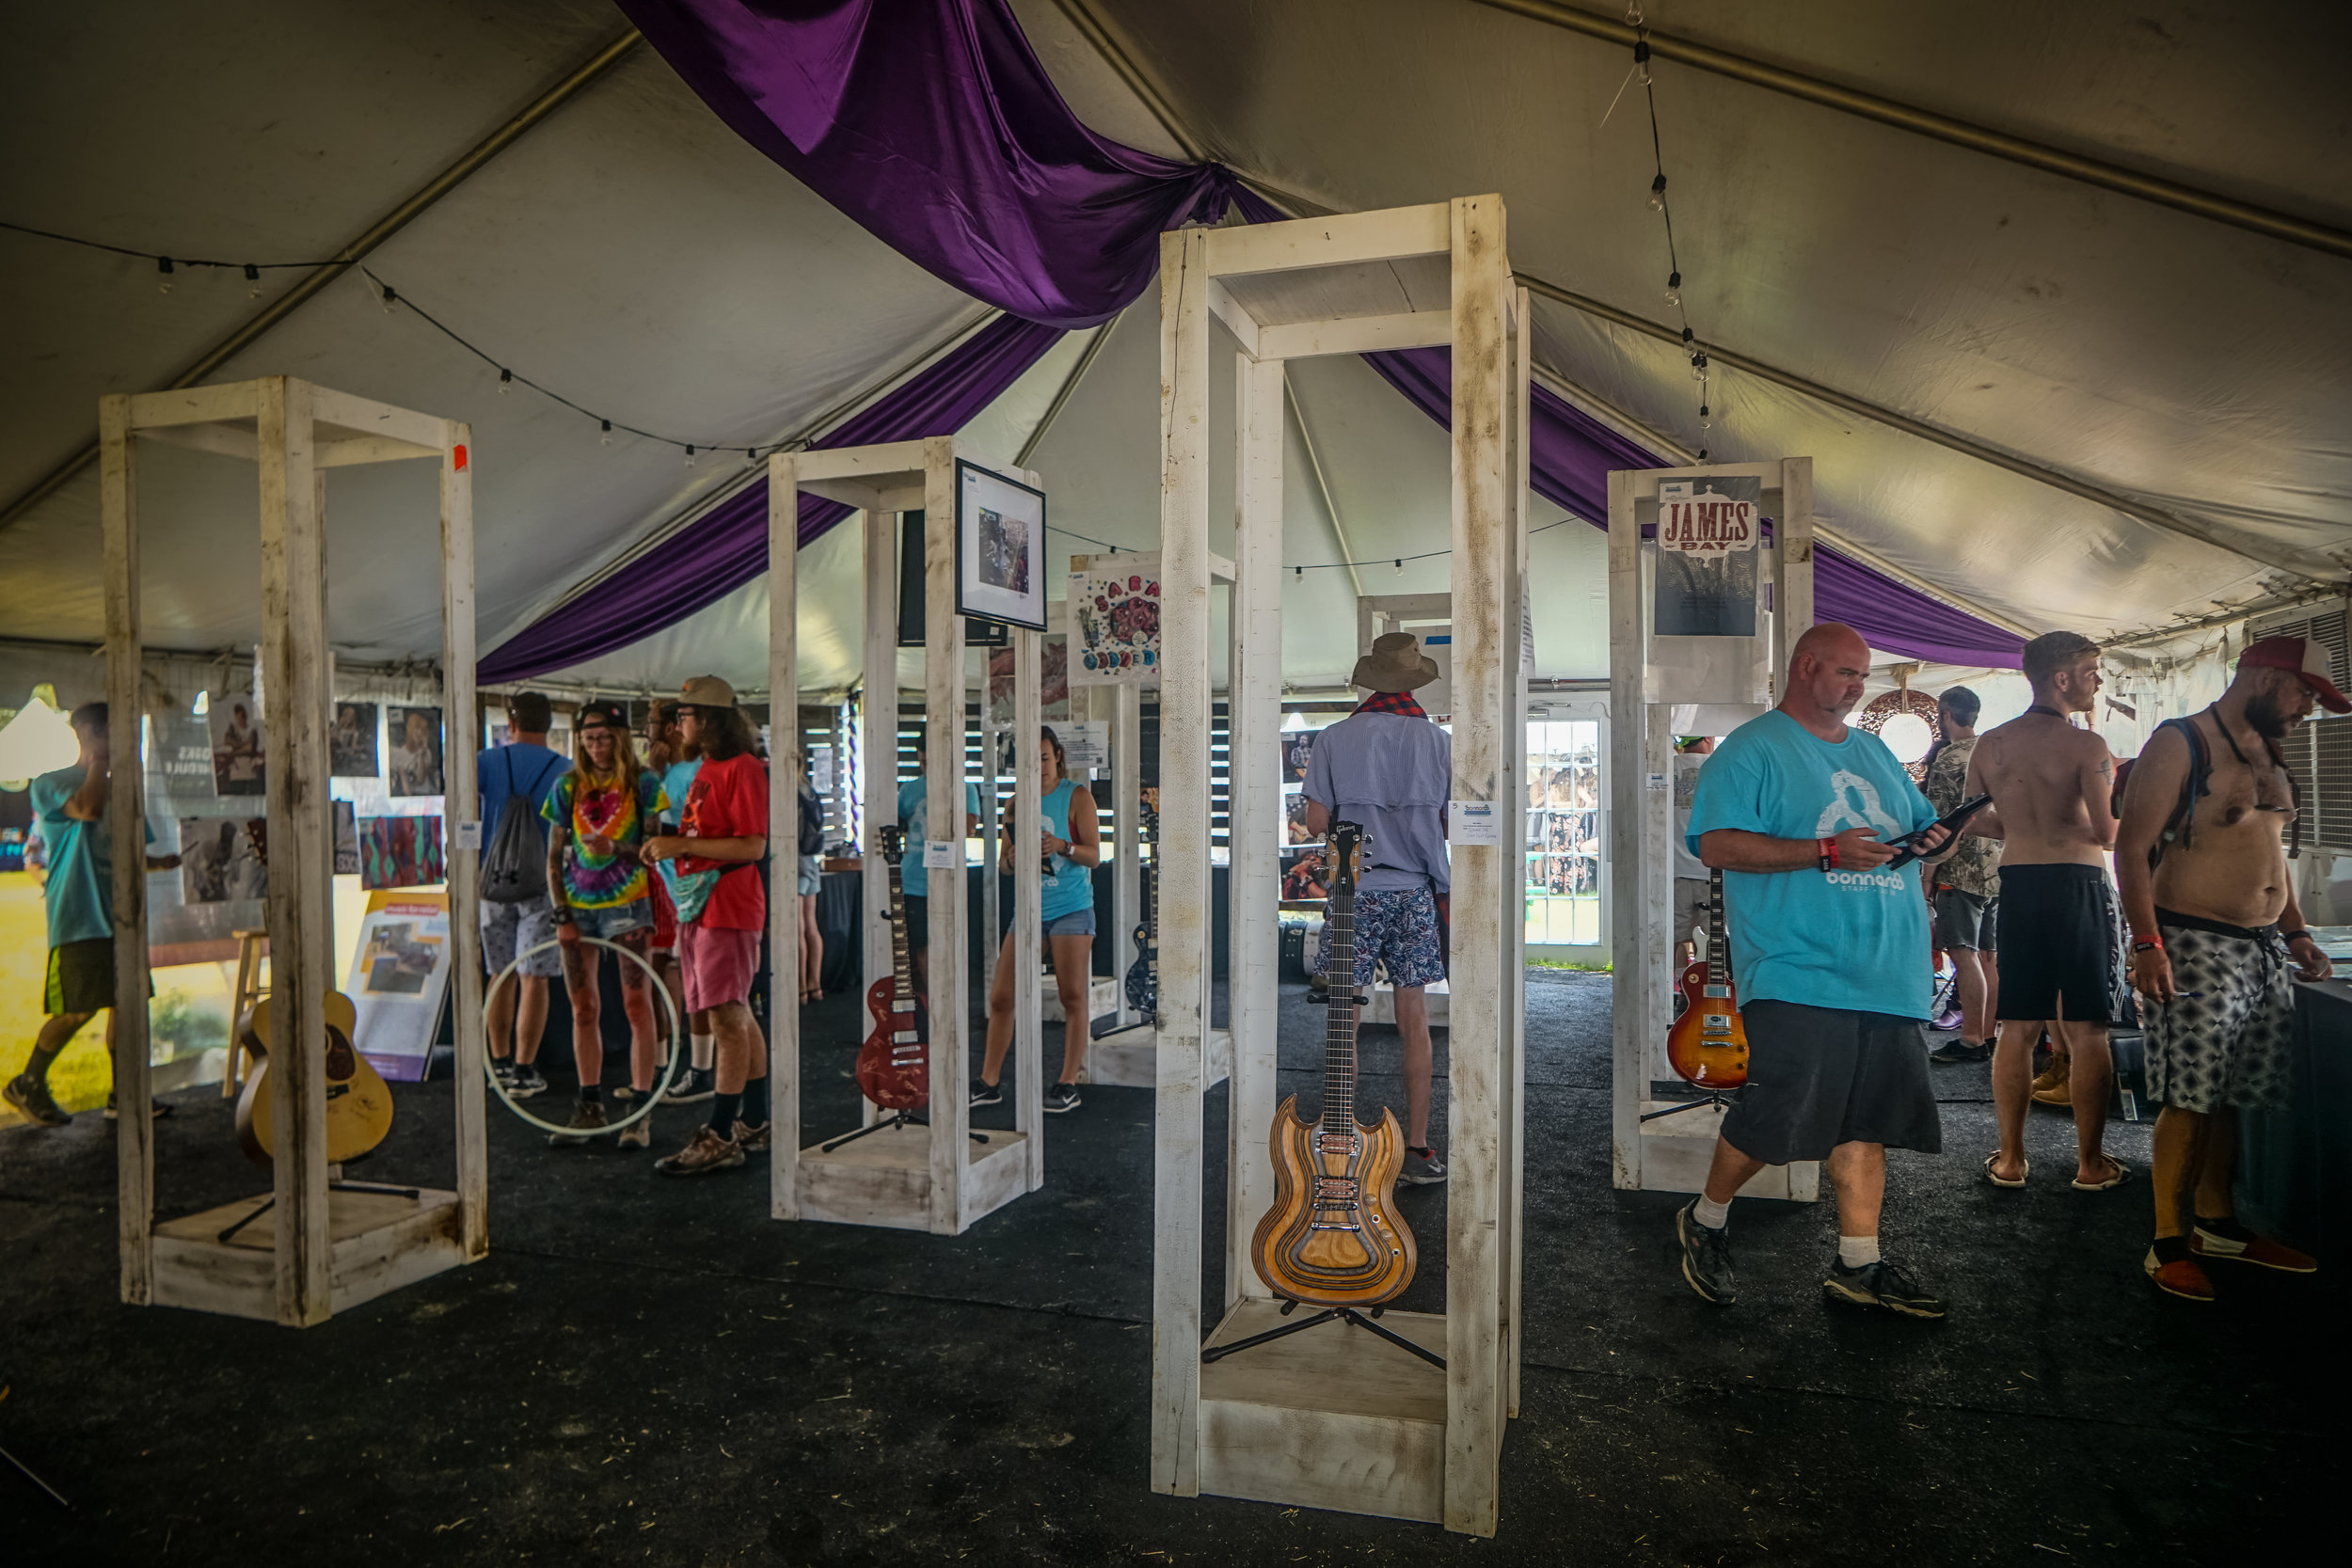 SILENT AUCTION @ THE ROO WORKS HQ - Bid on autographed items from past, present and future Bonnaroo performers. 100% of funds raised go toward nonprofits.